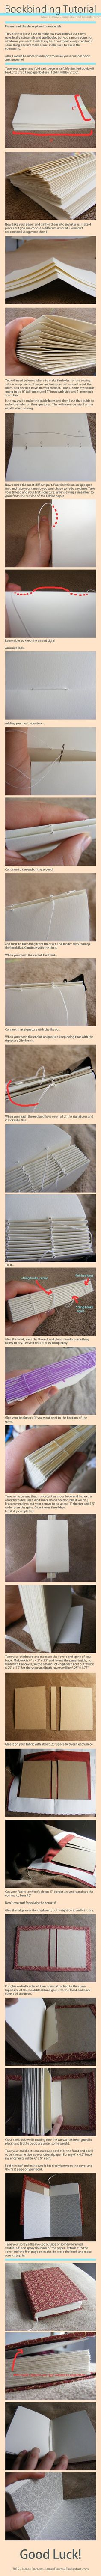 DIY Book! Cute craft idea, but seems VERY difficult.